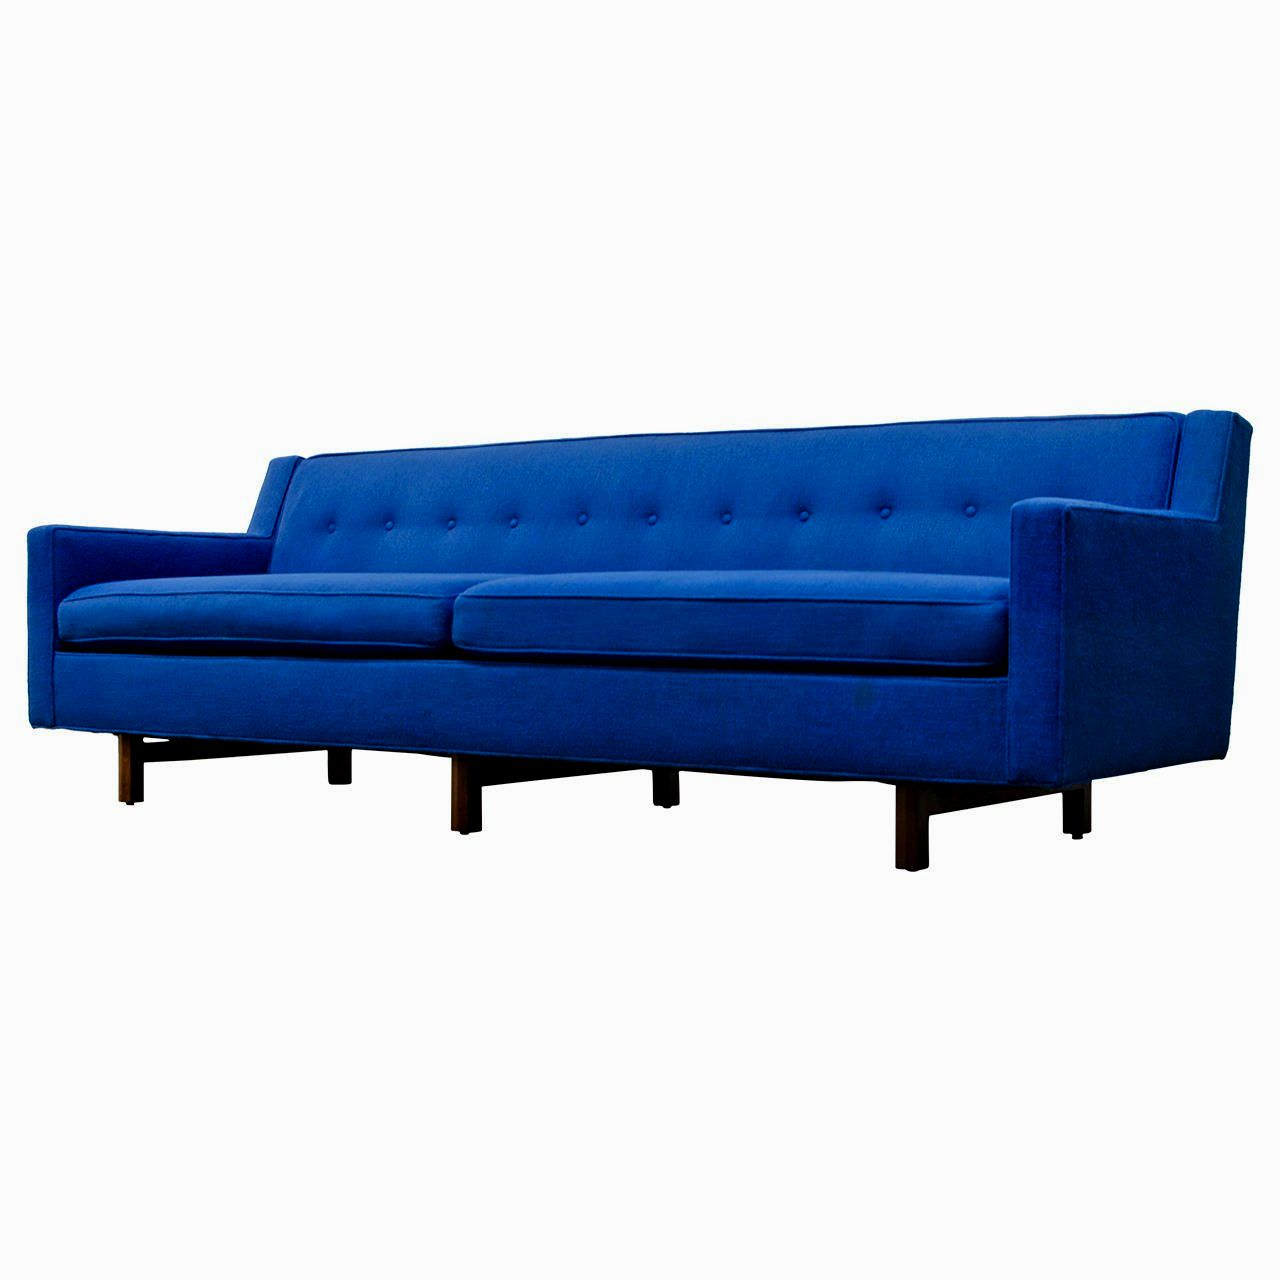 elegant milan leather sofa model-Contemporary Milan Leather sofa Layout